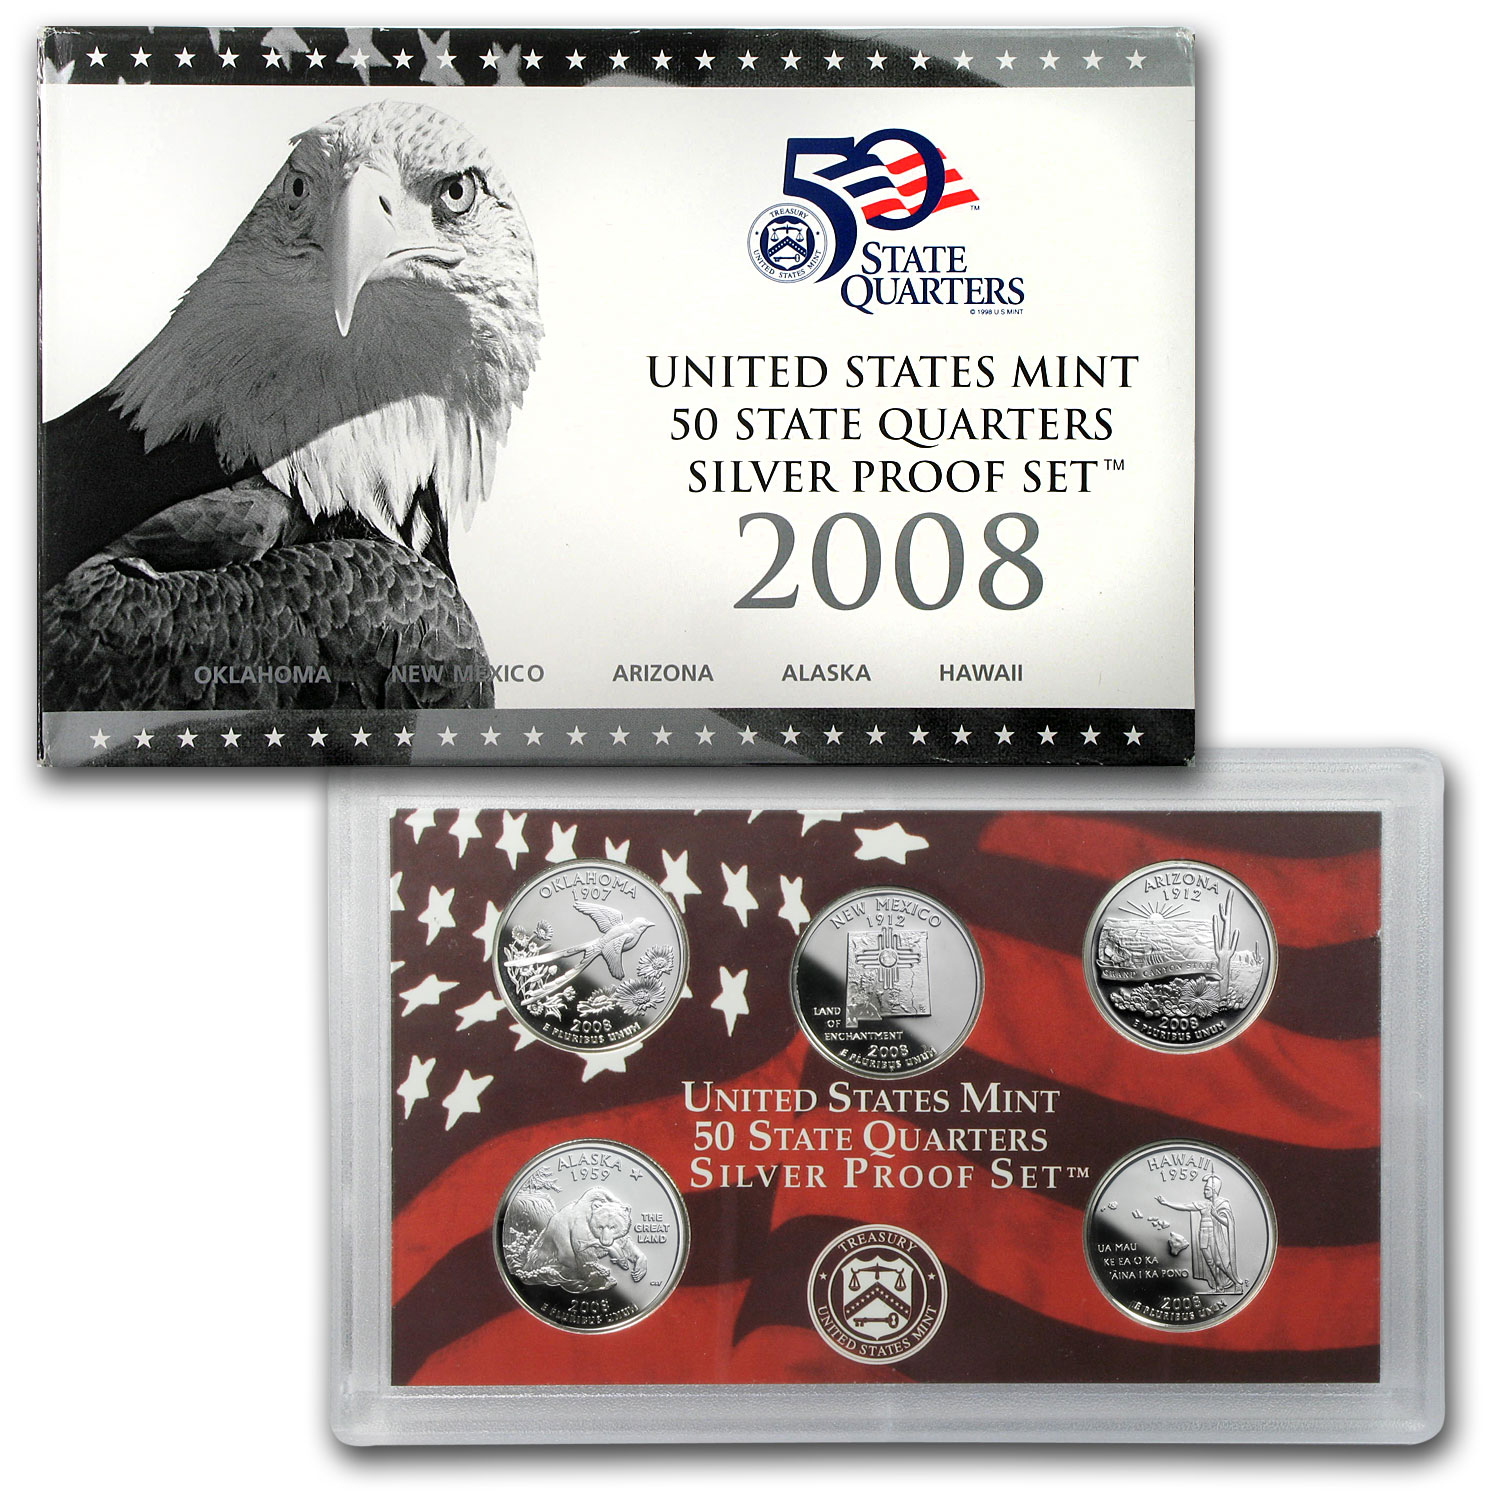 2008 State Quarters Silver Proof Set